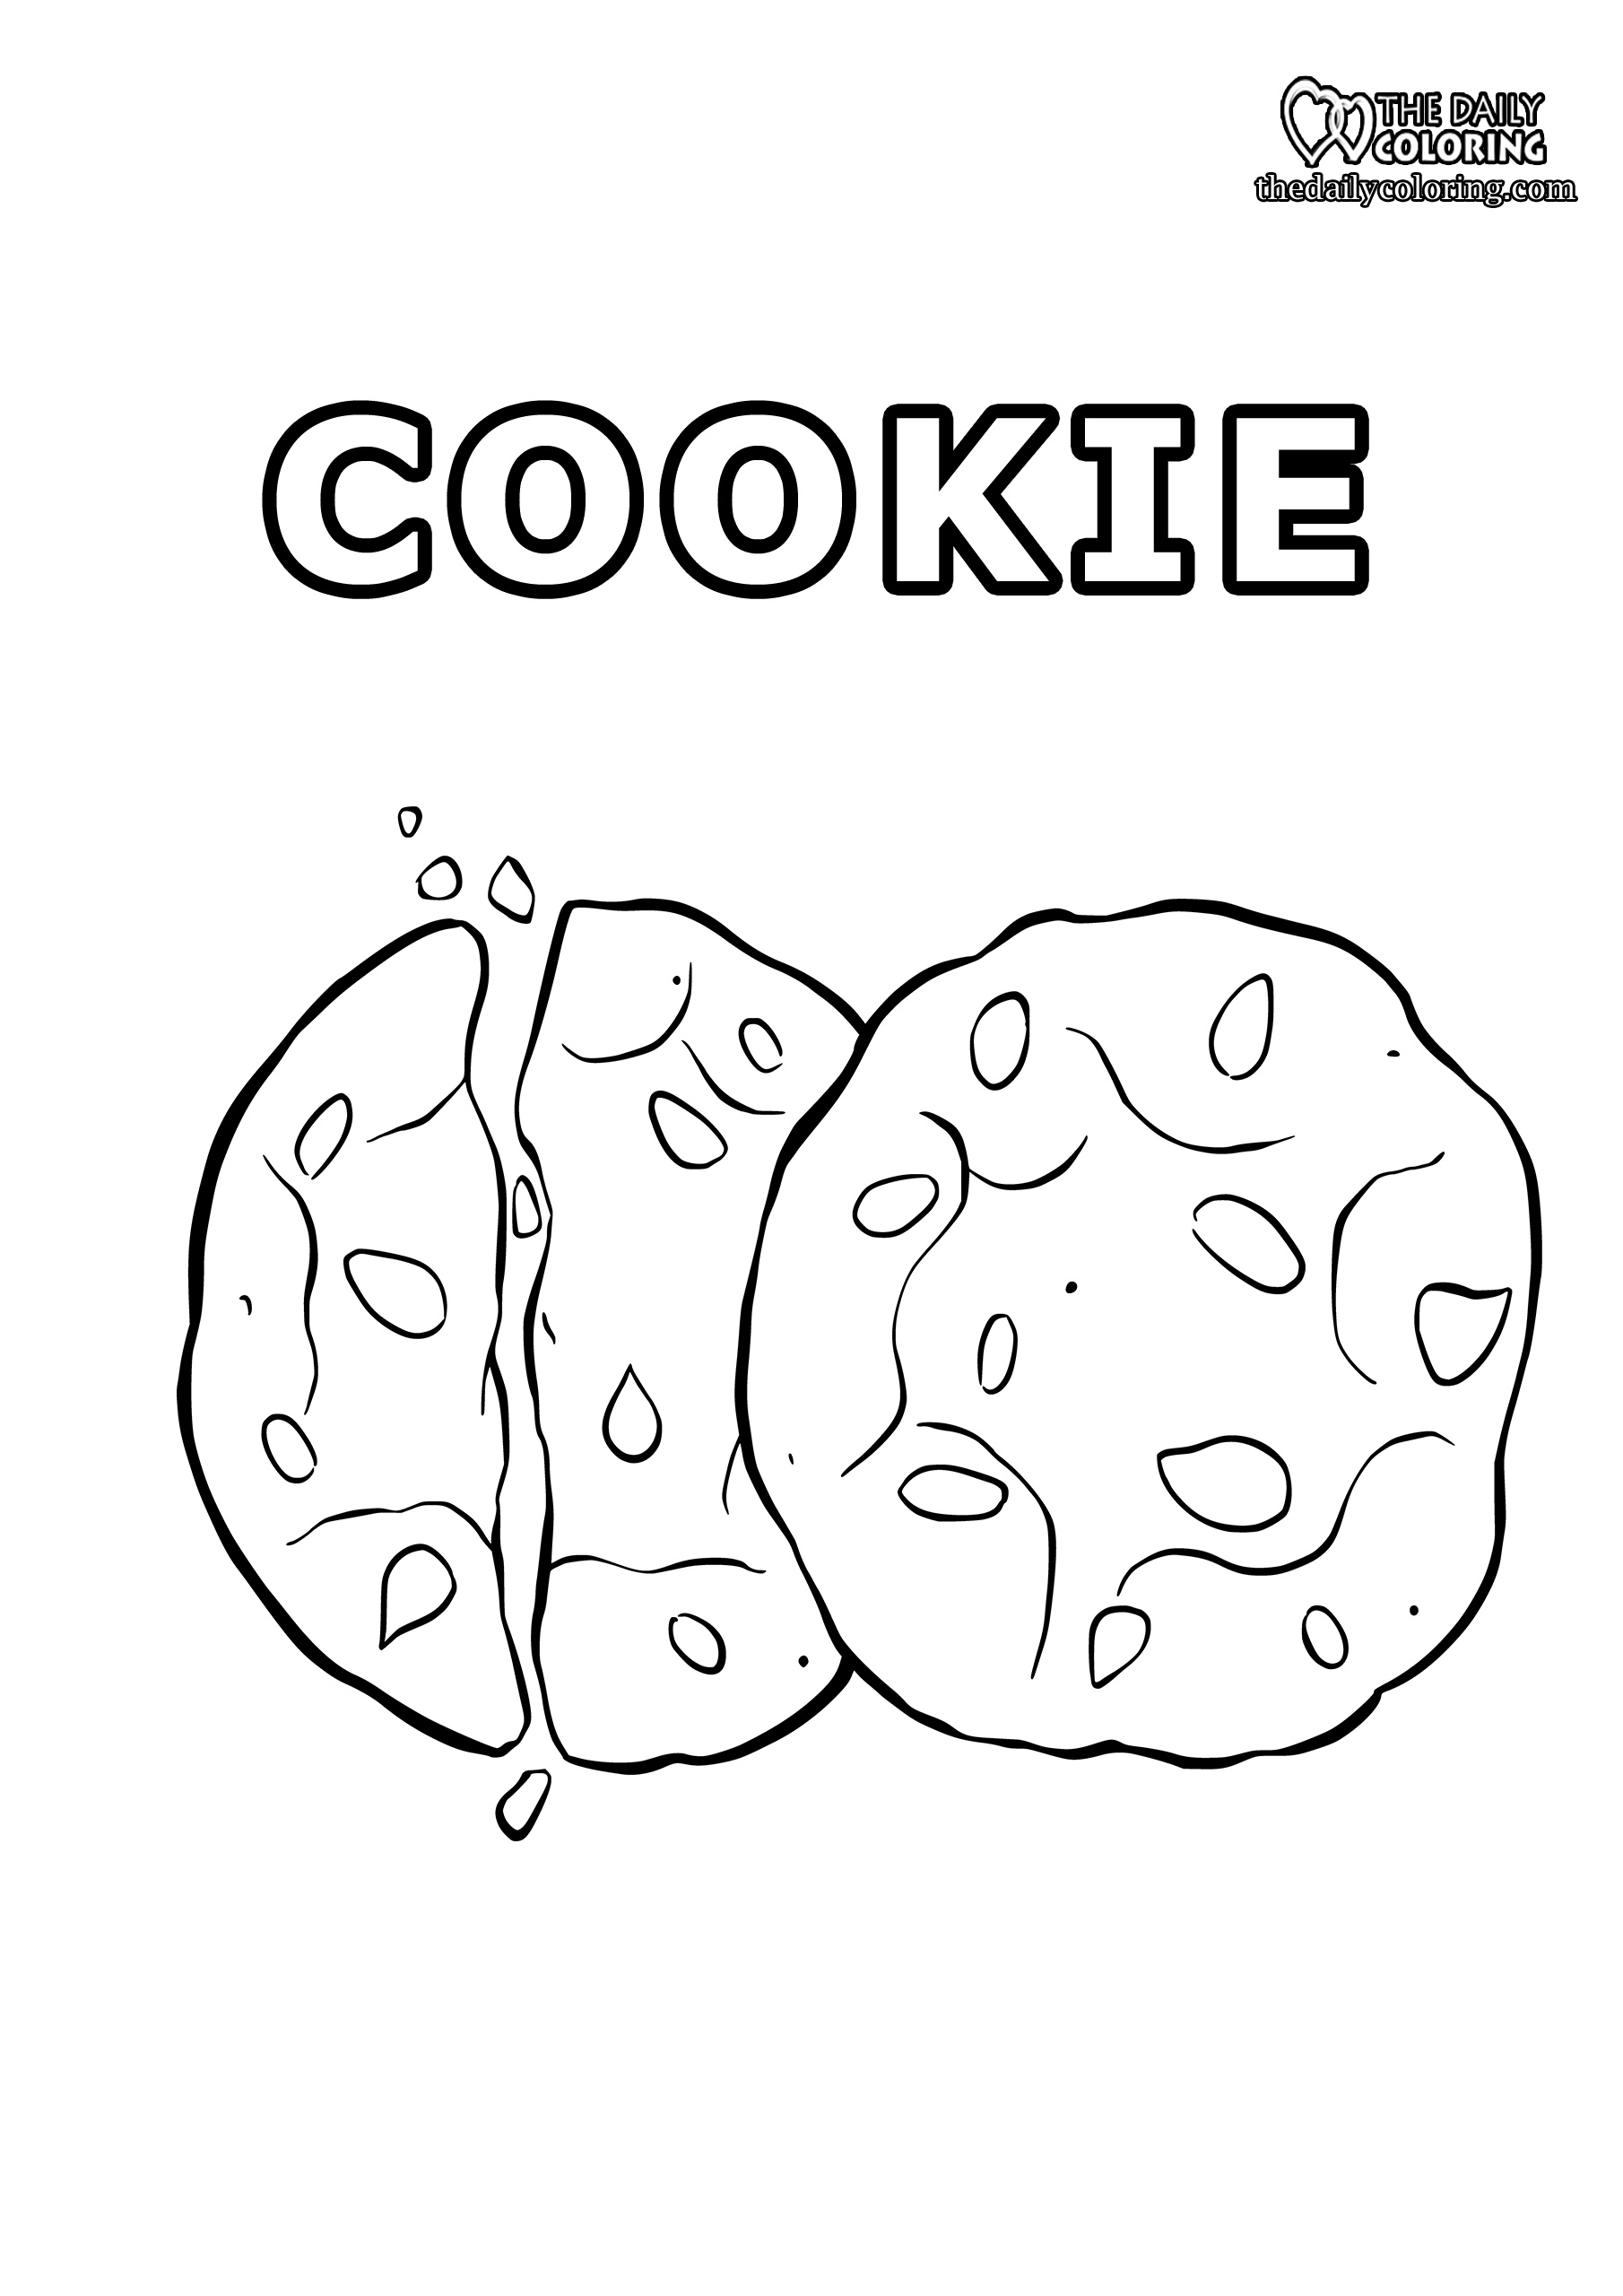 cookie-coloring-page